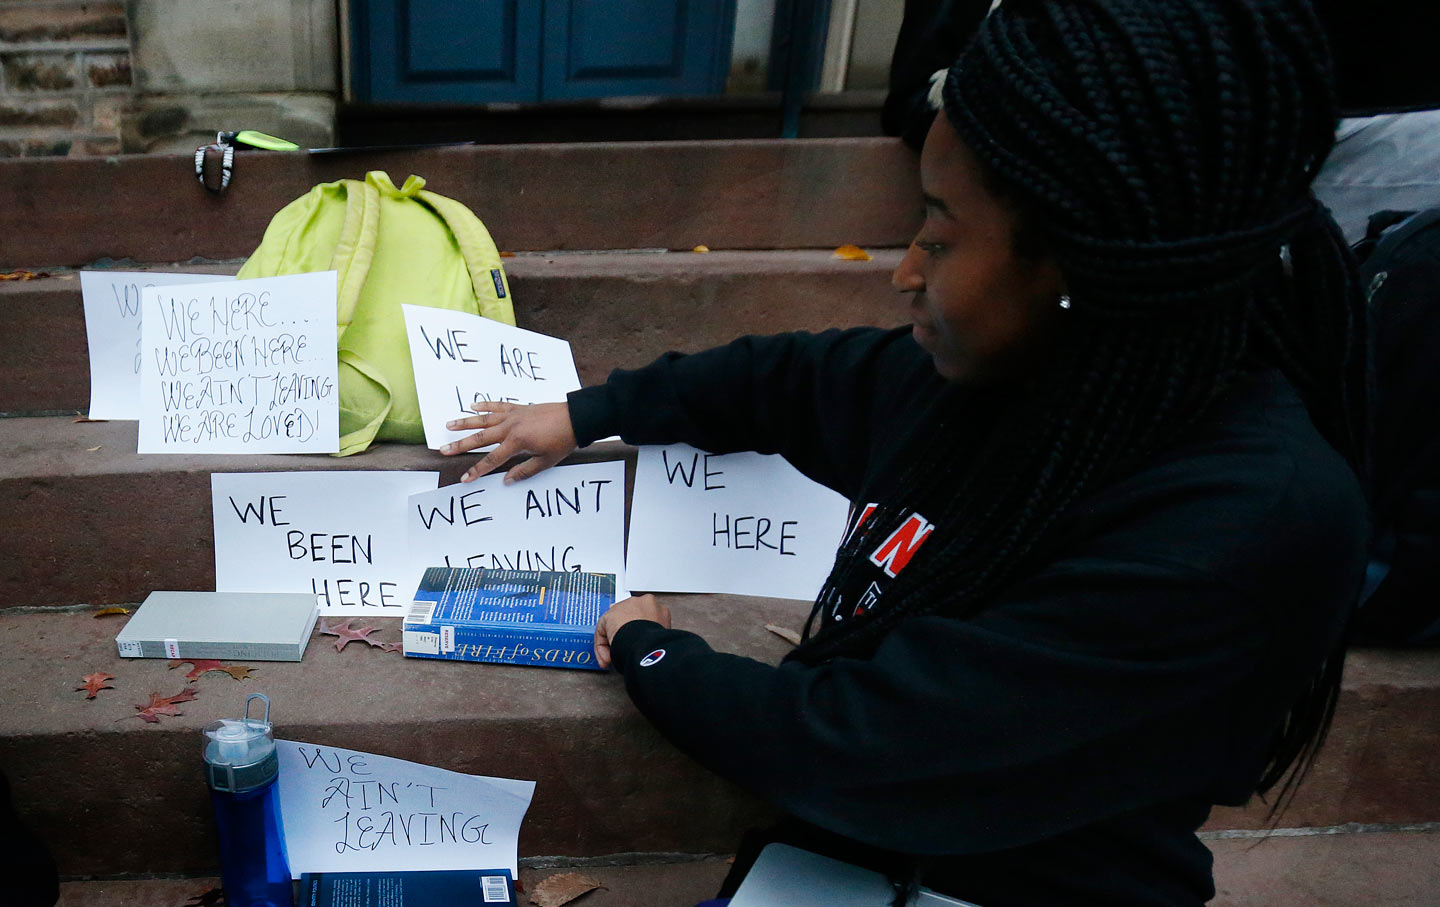 A student shows signs made for a sit-in to demand a range of changes to improve the social and academic experience of black students, at Princeton University, Wednesday, Nov. 18, 2015, in Princeton, N.J.